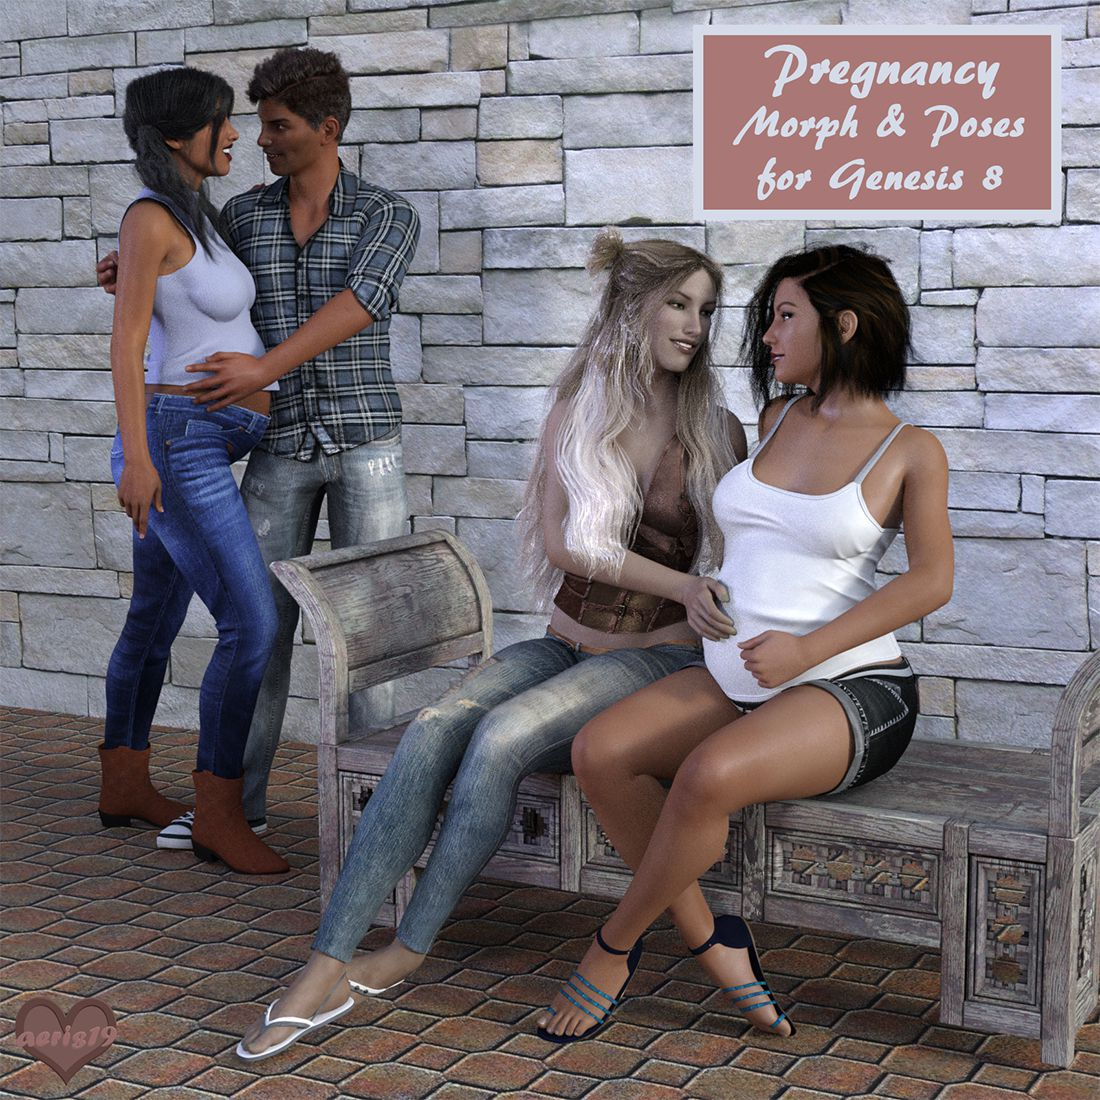 Pregnancy Morph and Poses for G8_DAZ3D下载站